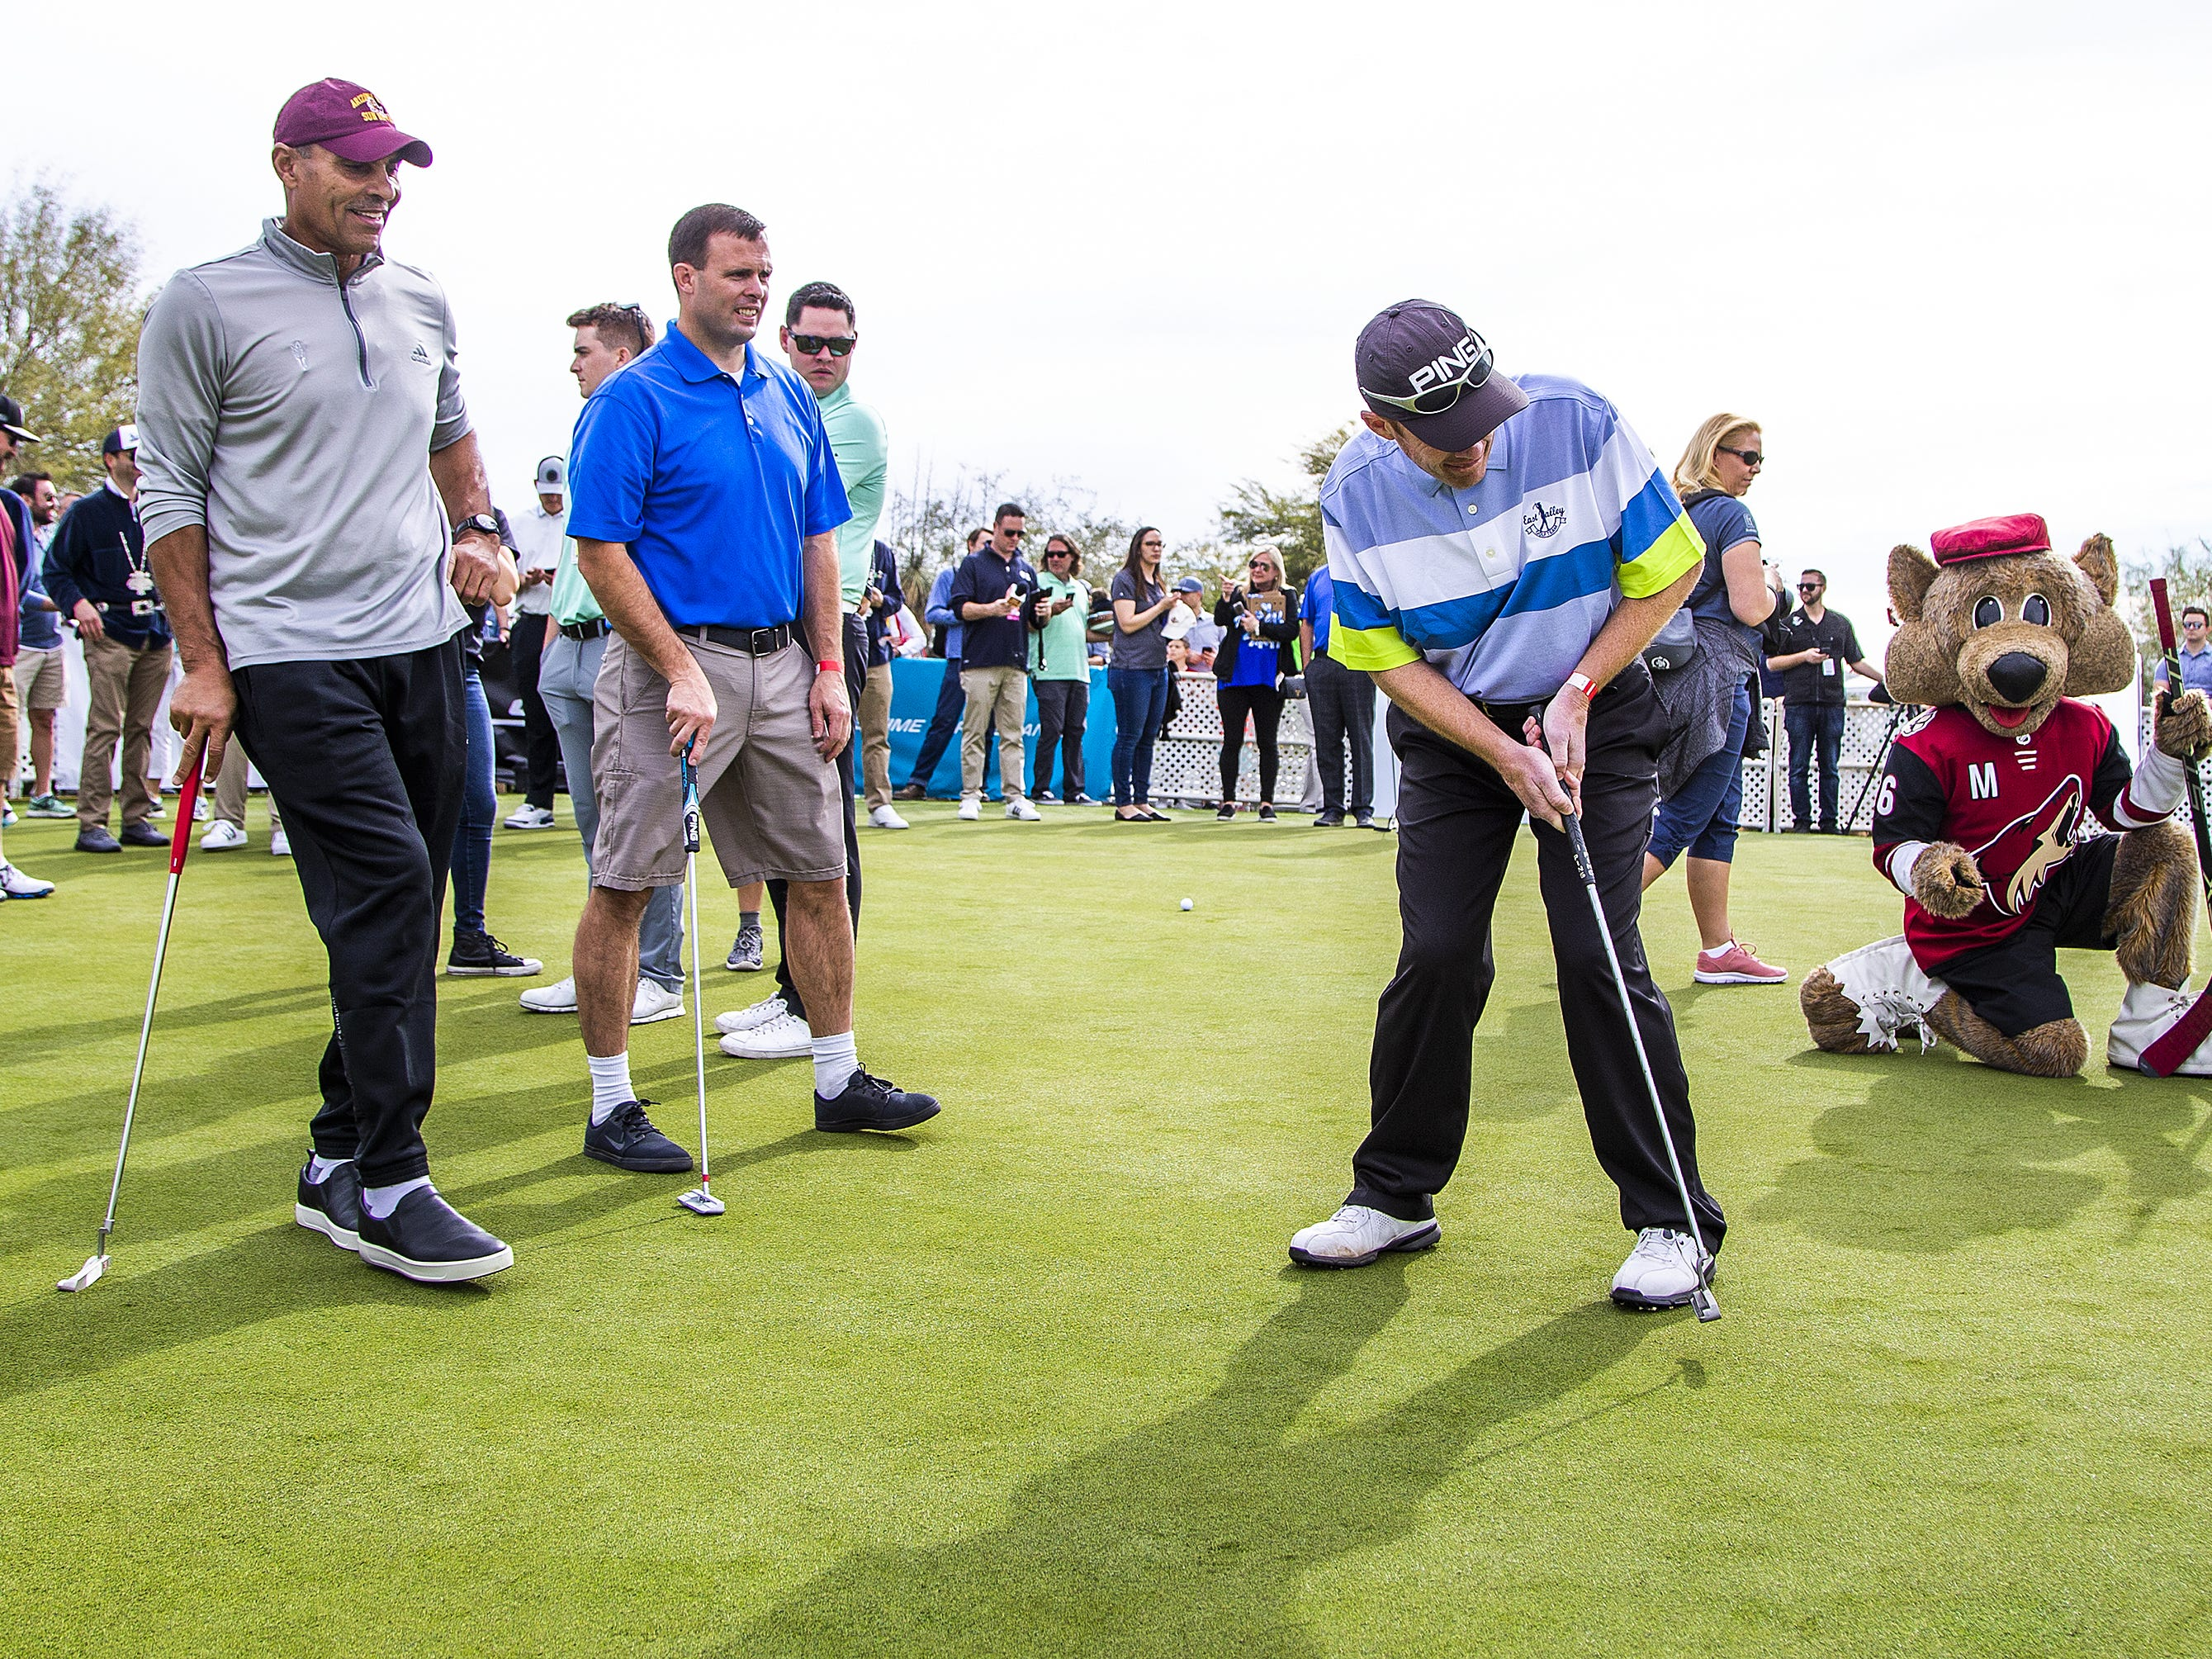 Brian Jantzen, Gilbert, right, putts as his partner, ASU head coach Herm Edwards, left, watches during the San Tan Ford Special Olympics Open at the Waste Management Phoenix Open at the TPC Scottsdale, Tuesday, January 29, 2019.